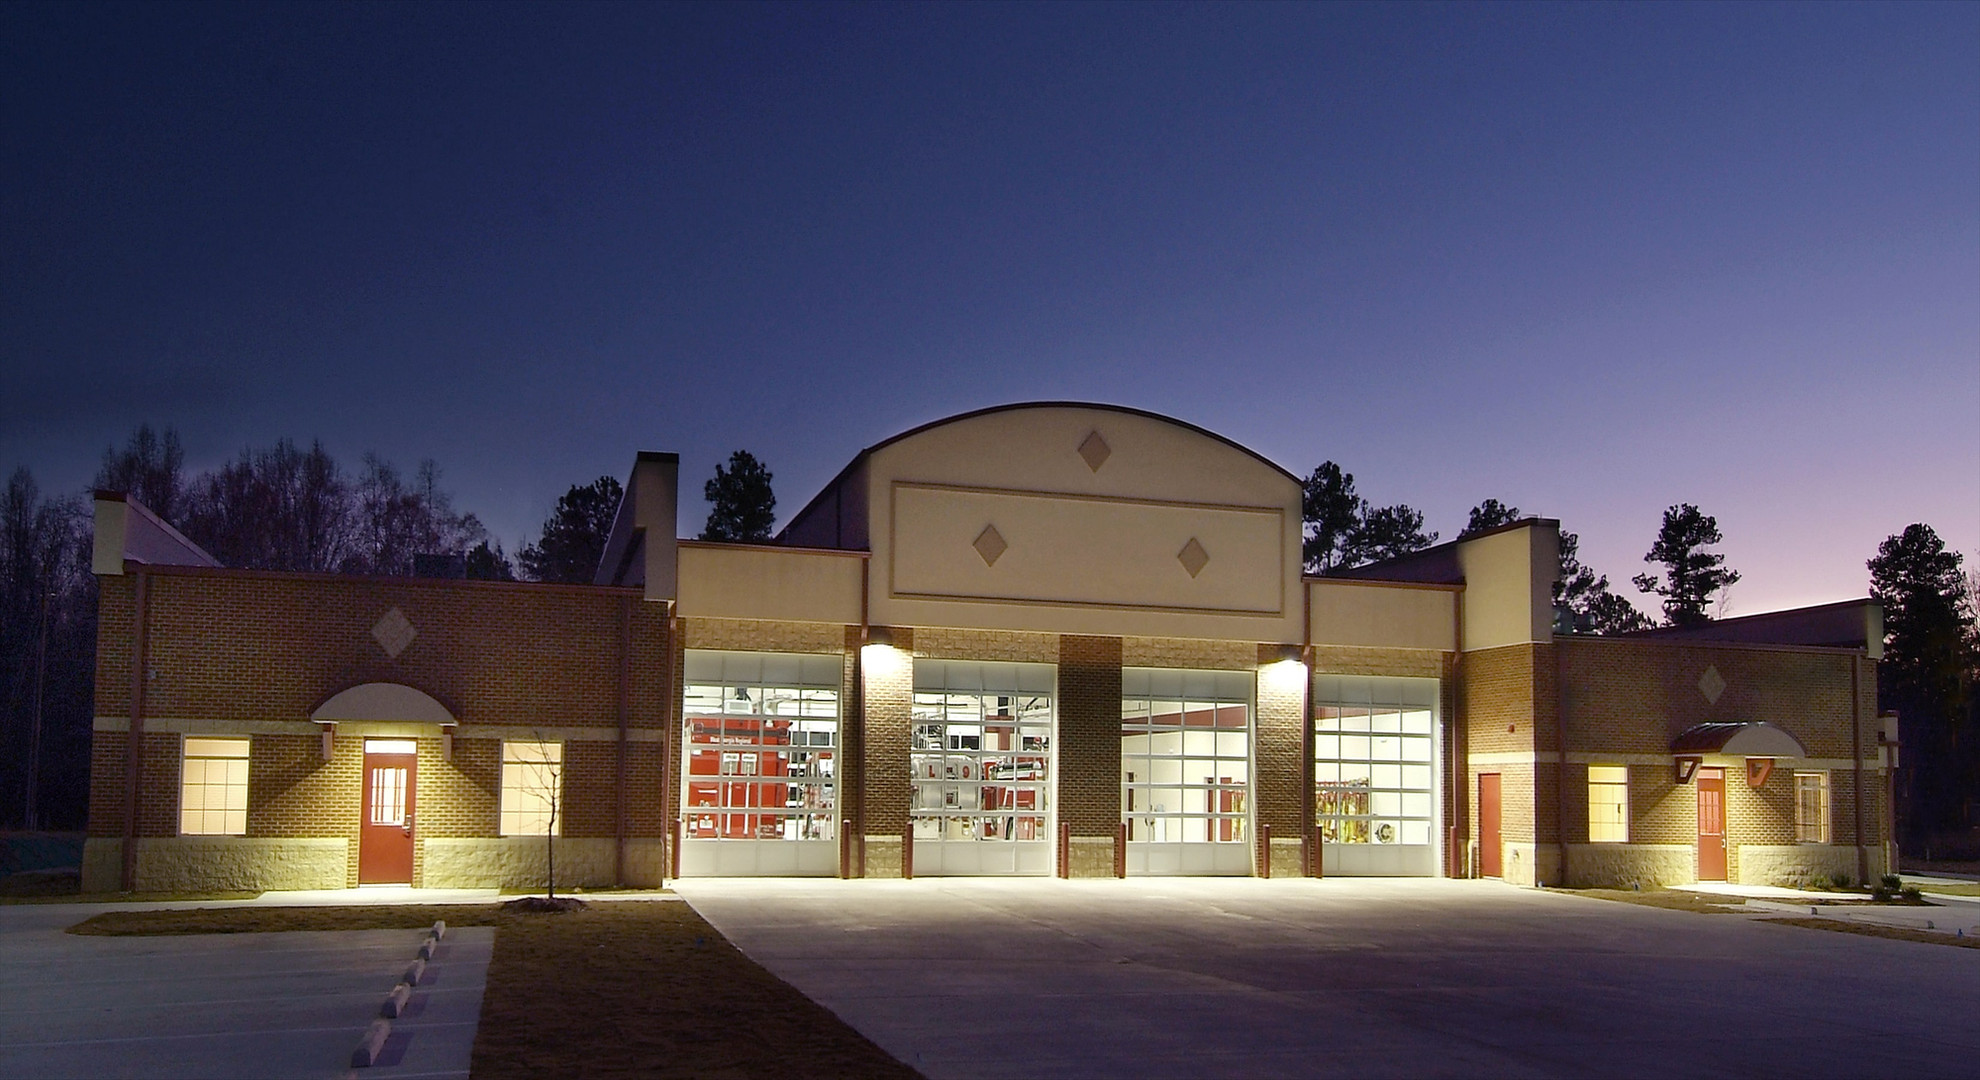 Carroll County Fire Station 16